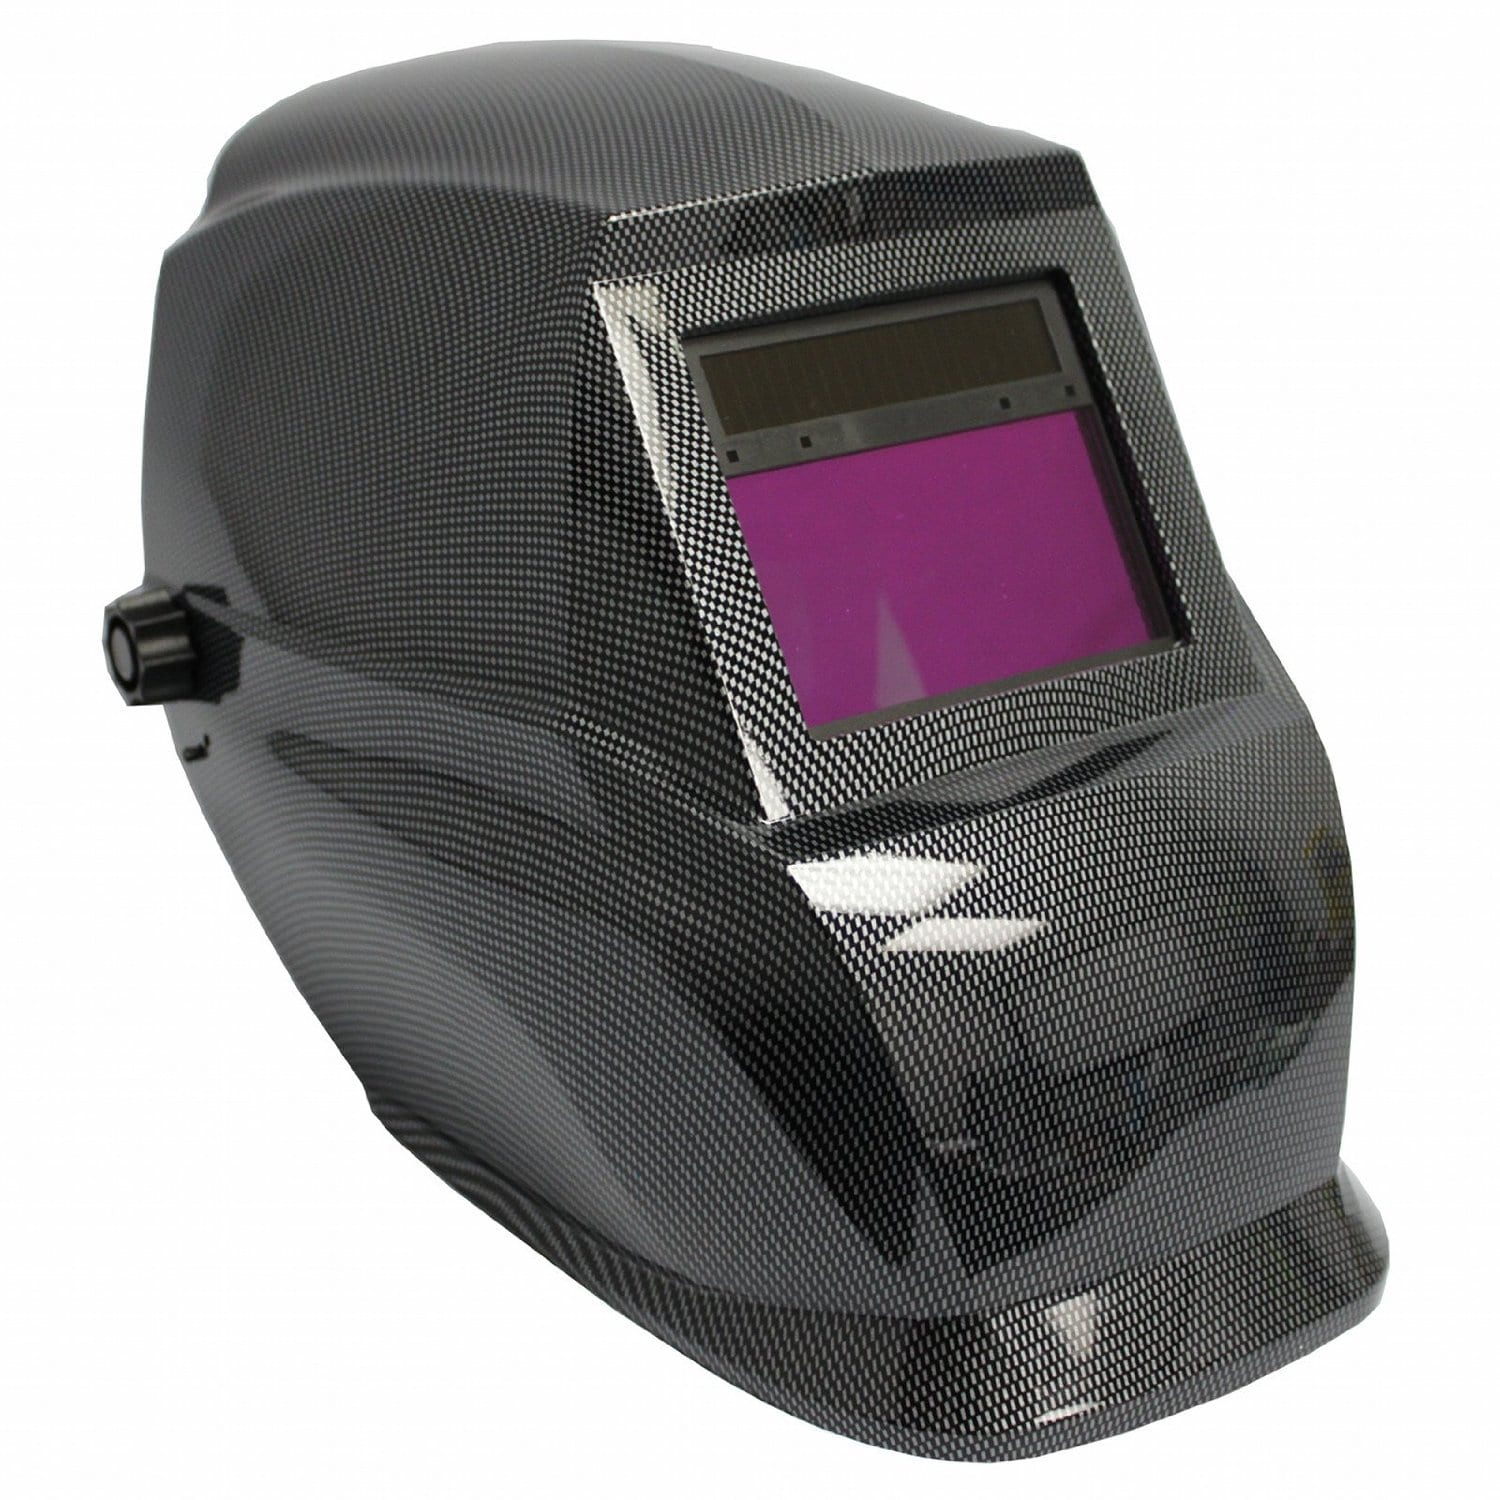 Antra AH5-350-001x solar power auto darkening welding helmet Review